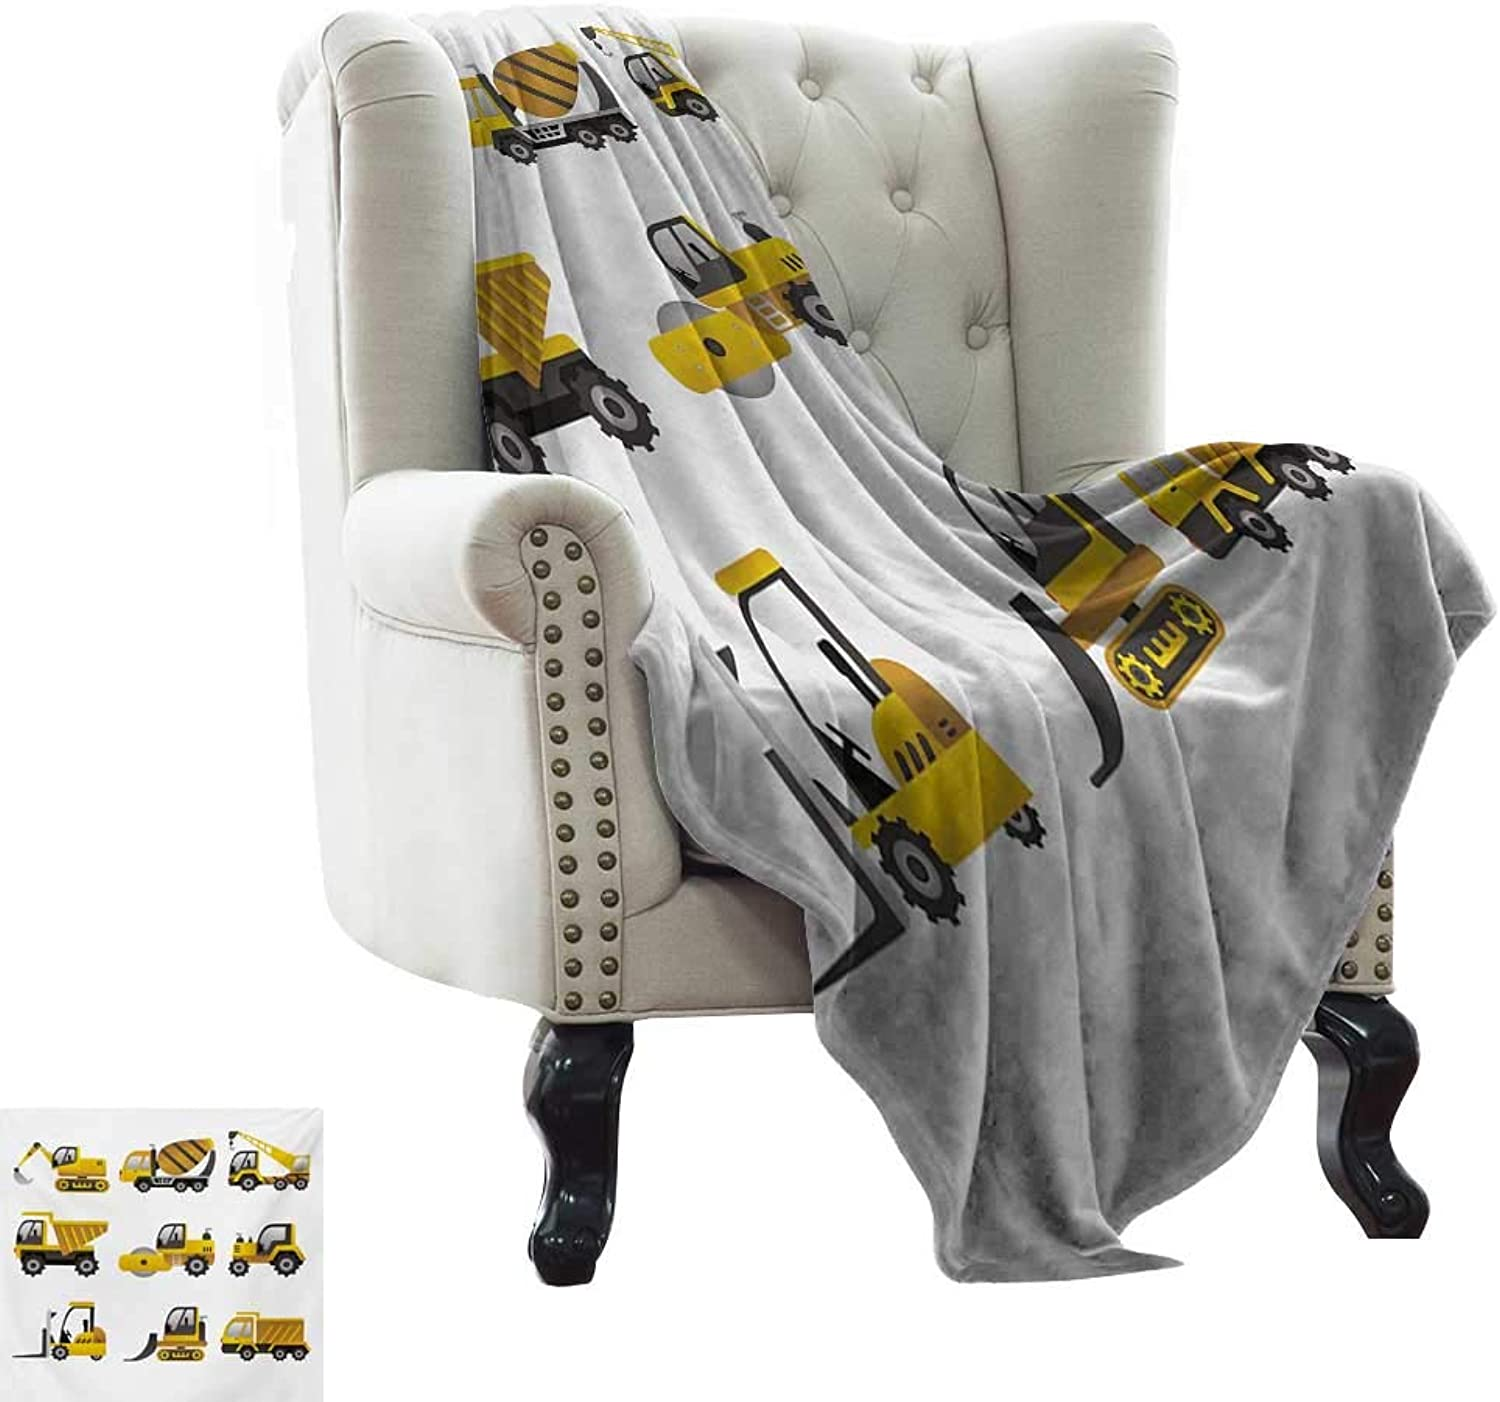 Couch Blanket Construction,Big Vehicles Icon Collection Engineering Building Theme Clip Art Style,Yellow Grey White Weighted Blanket for Adults Kids, Better Deeper Sleep 50 x60